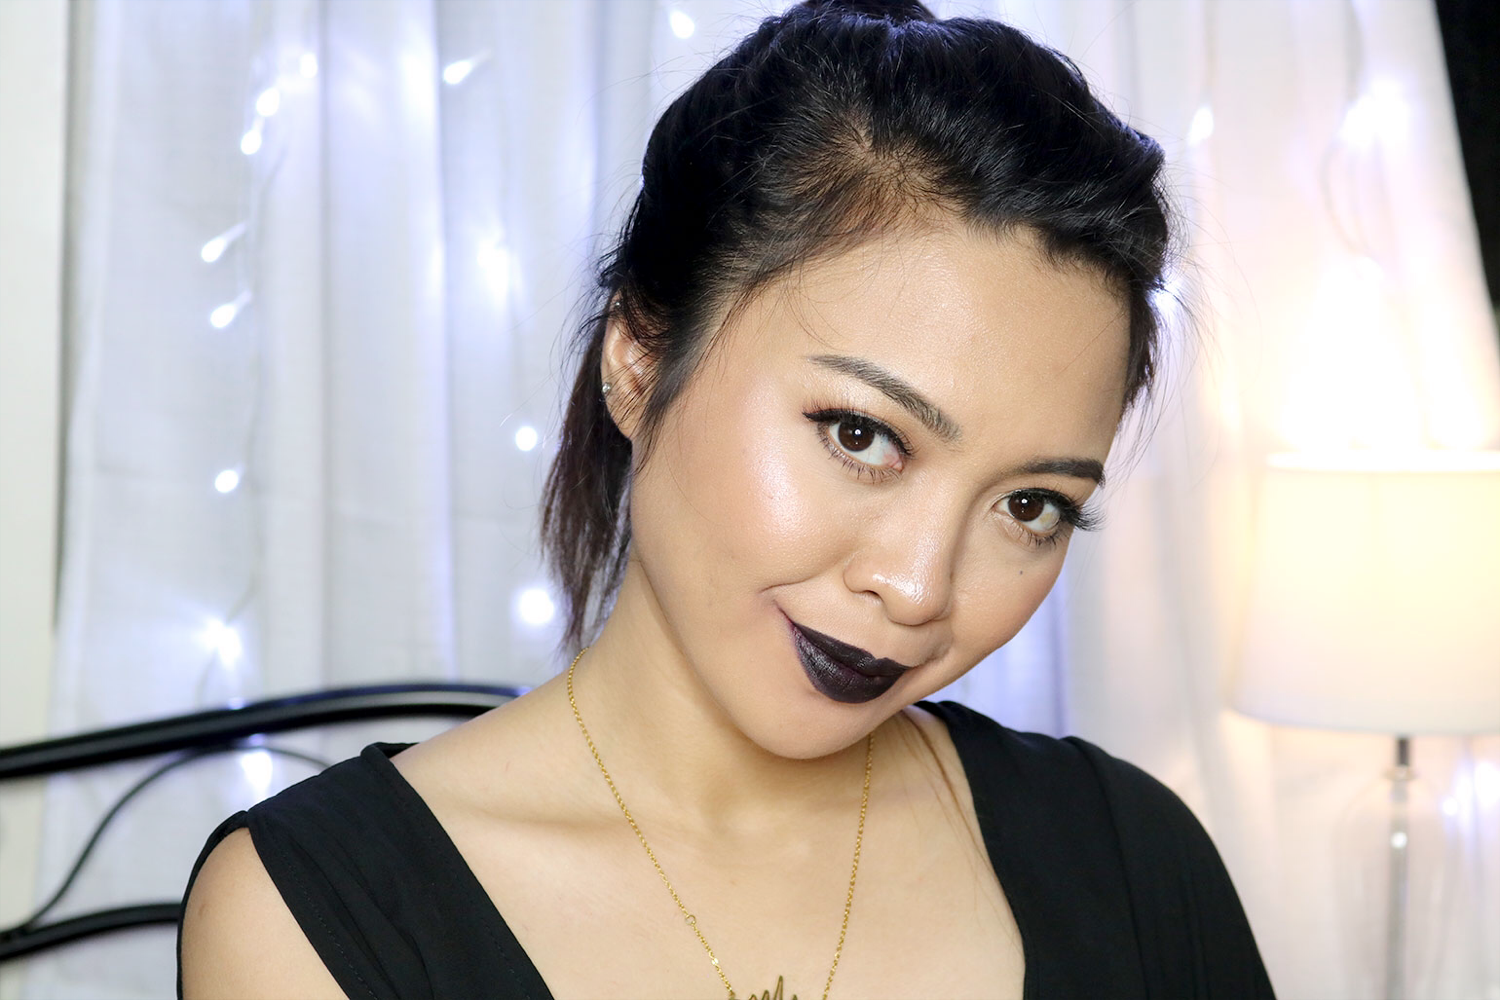 27 Maybelline Loaded Bolds Mattes Review Swatches Photos - Pitch Black - She Sings Beauty by Gen-zel